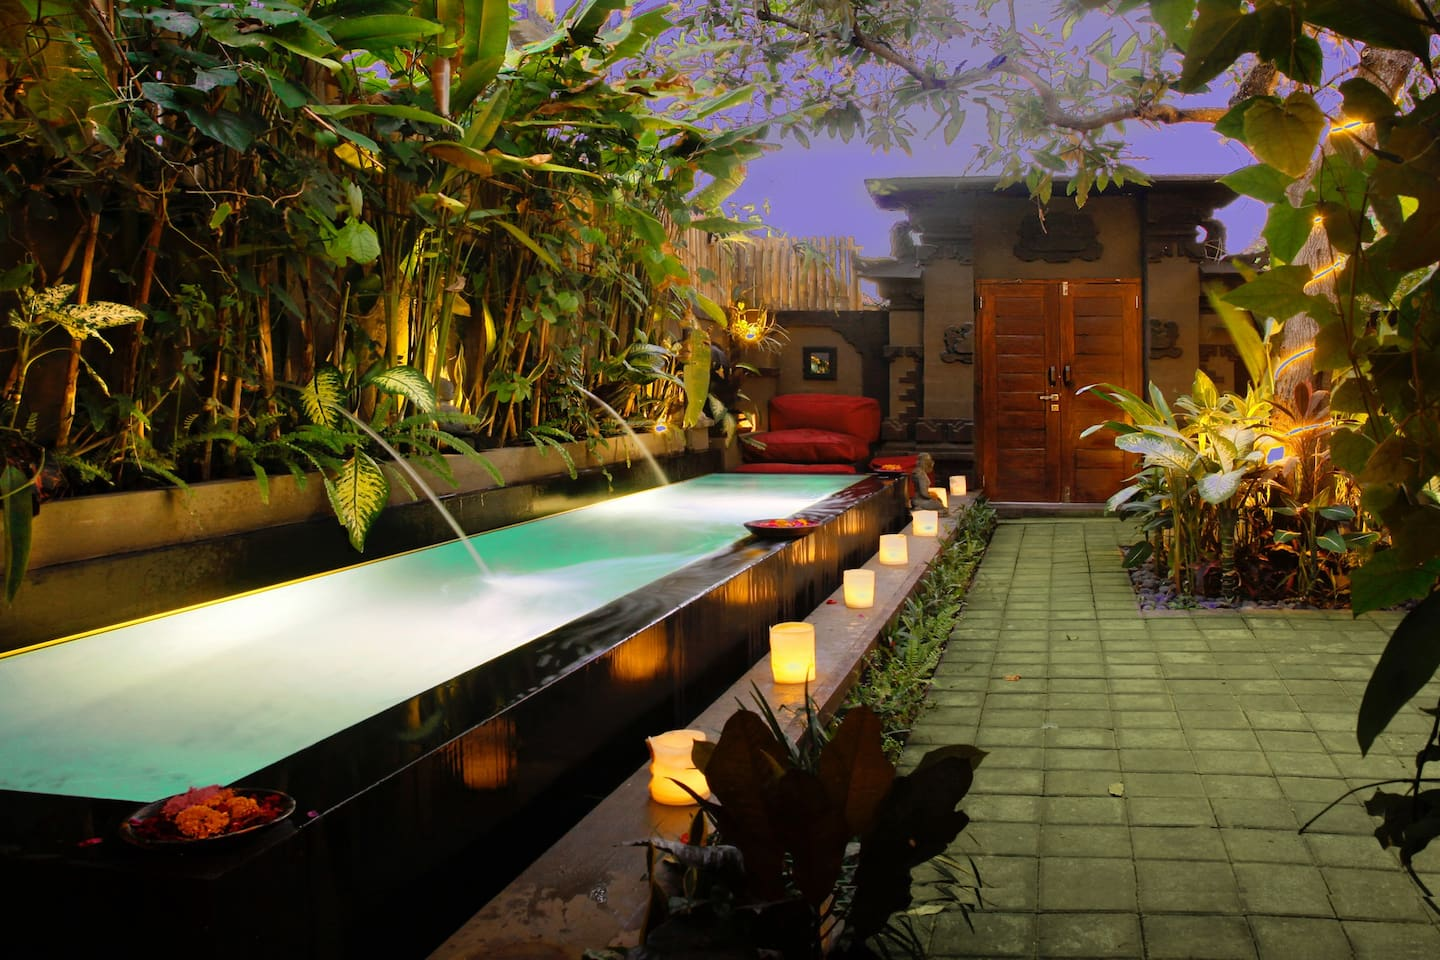 Candlelit Pool at Night and Balinese Entrance